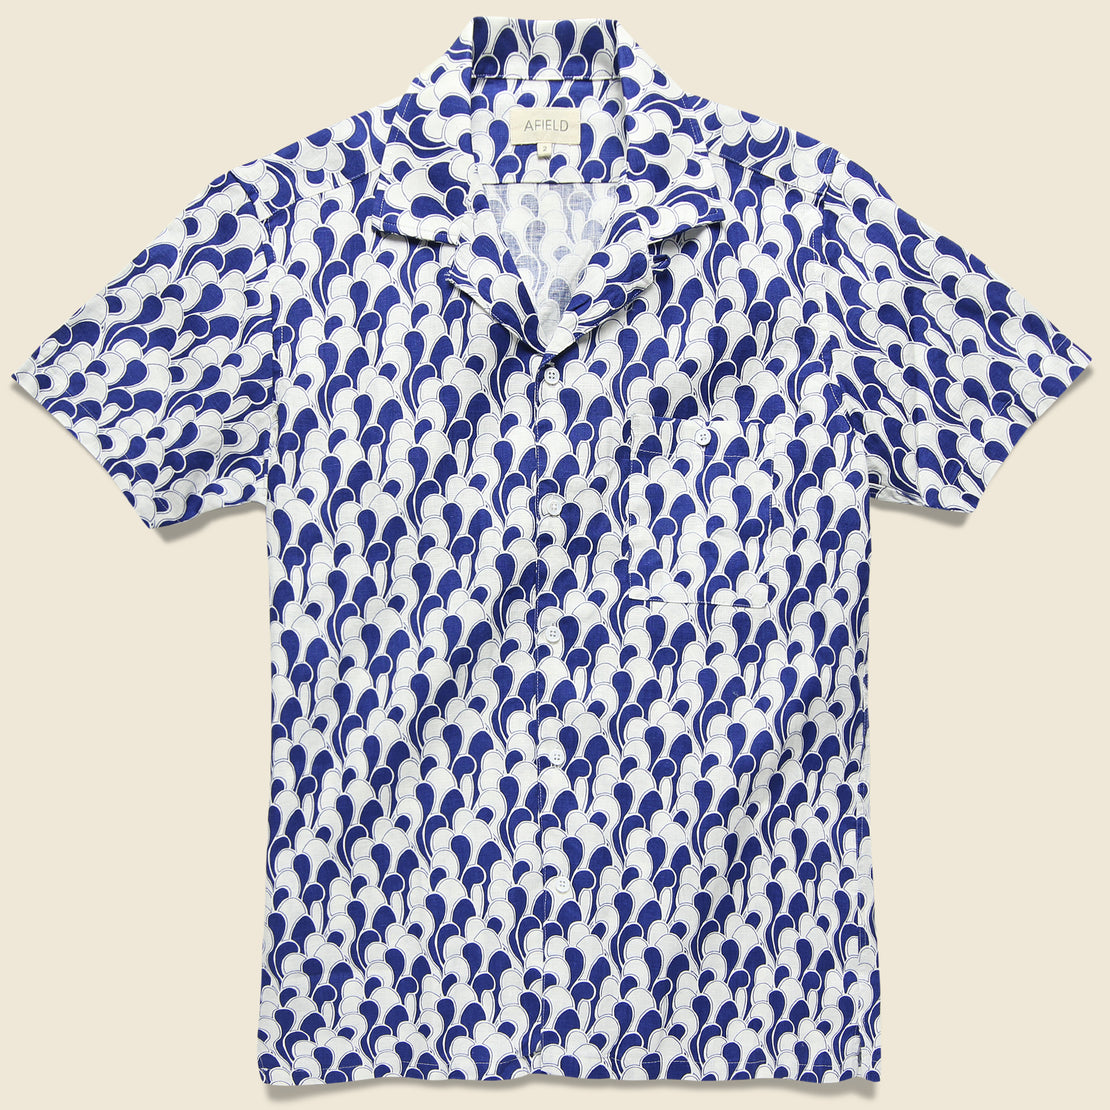 Afield Selleck Shirt - Waves